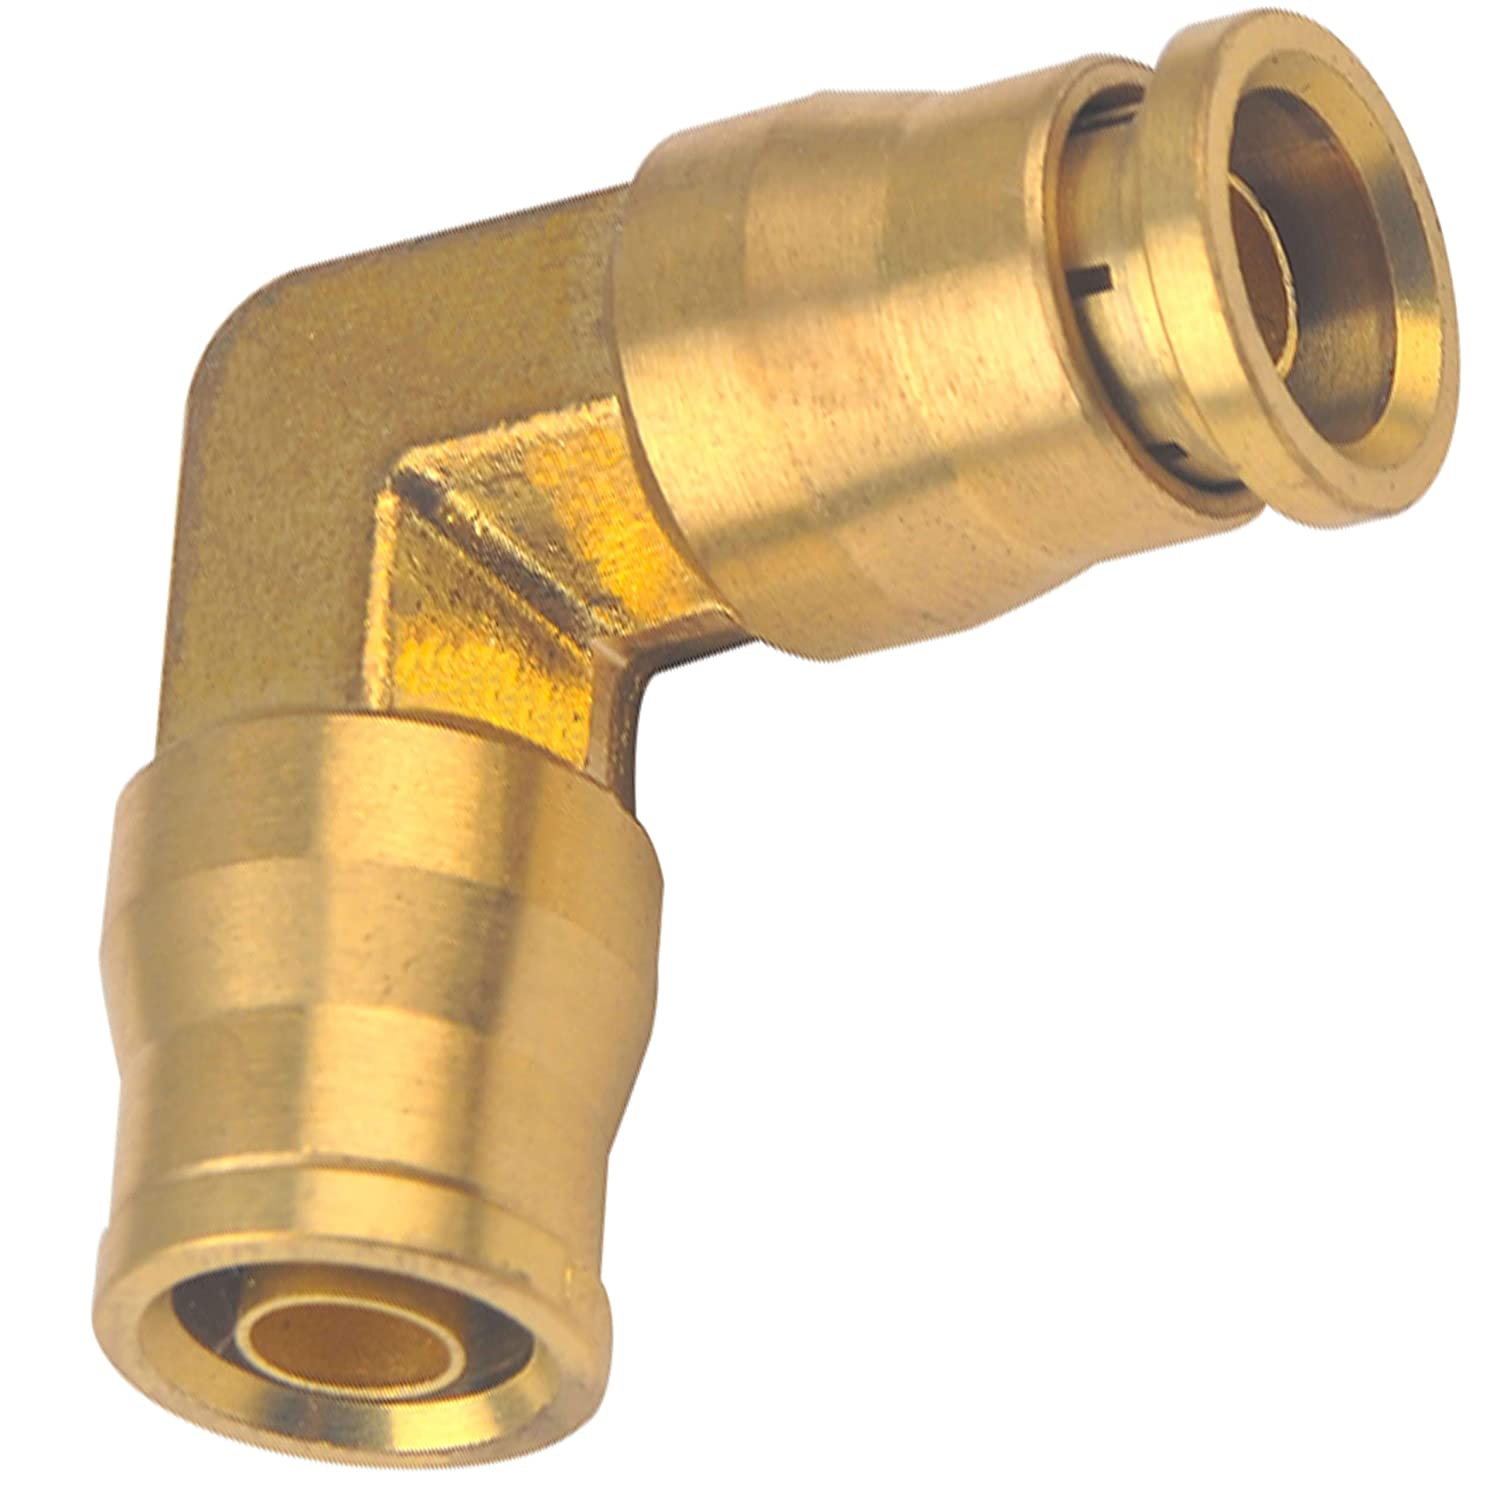 Part B606 1//4 Utah Pneumatic Pack of 2 1//4 Od D.O.T Approved Brass Push to Connect Elbow Union for Saej844 Nylon Air Brake Tube Applications